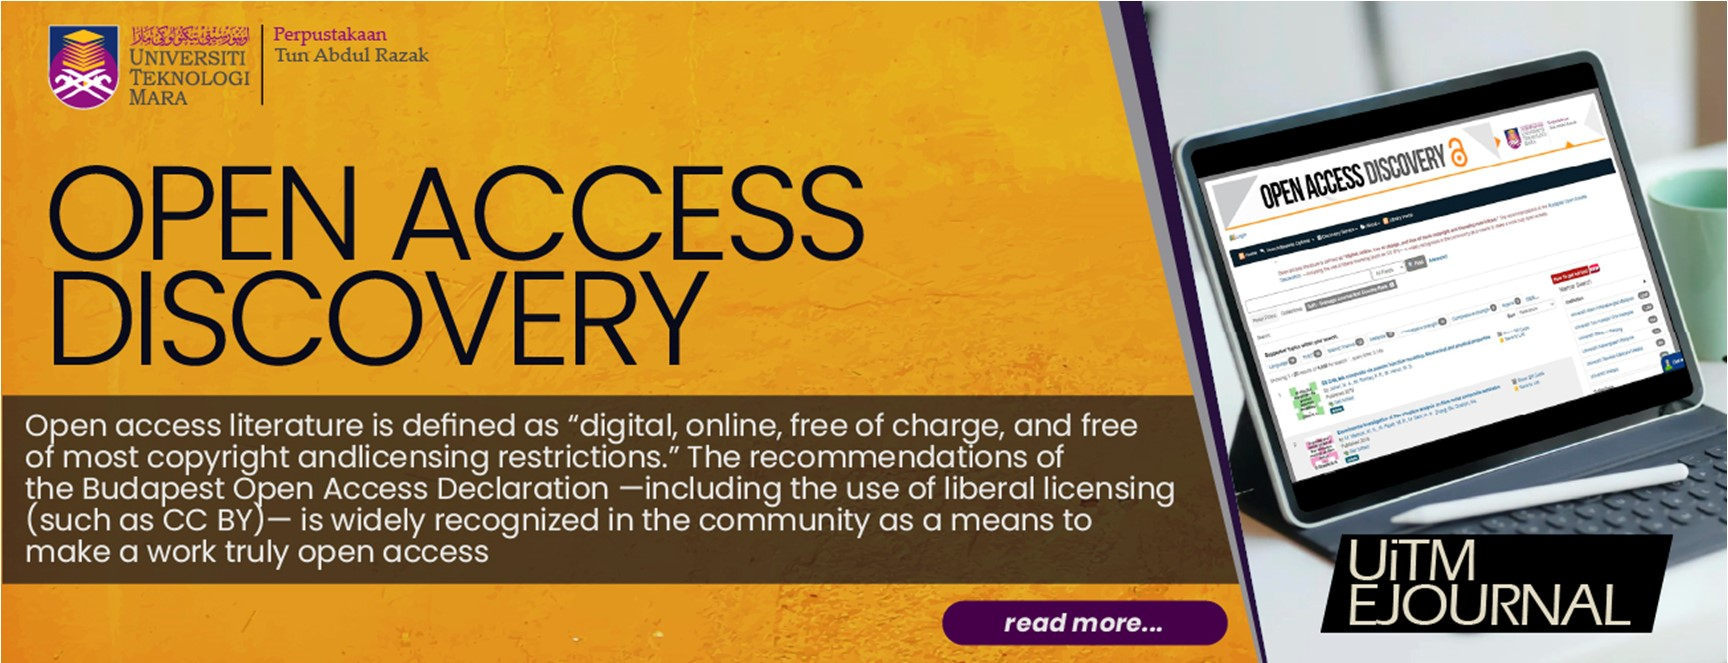 Open Access Discovery